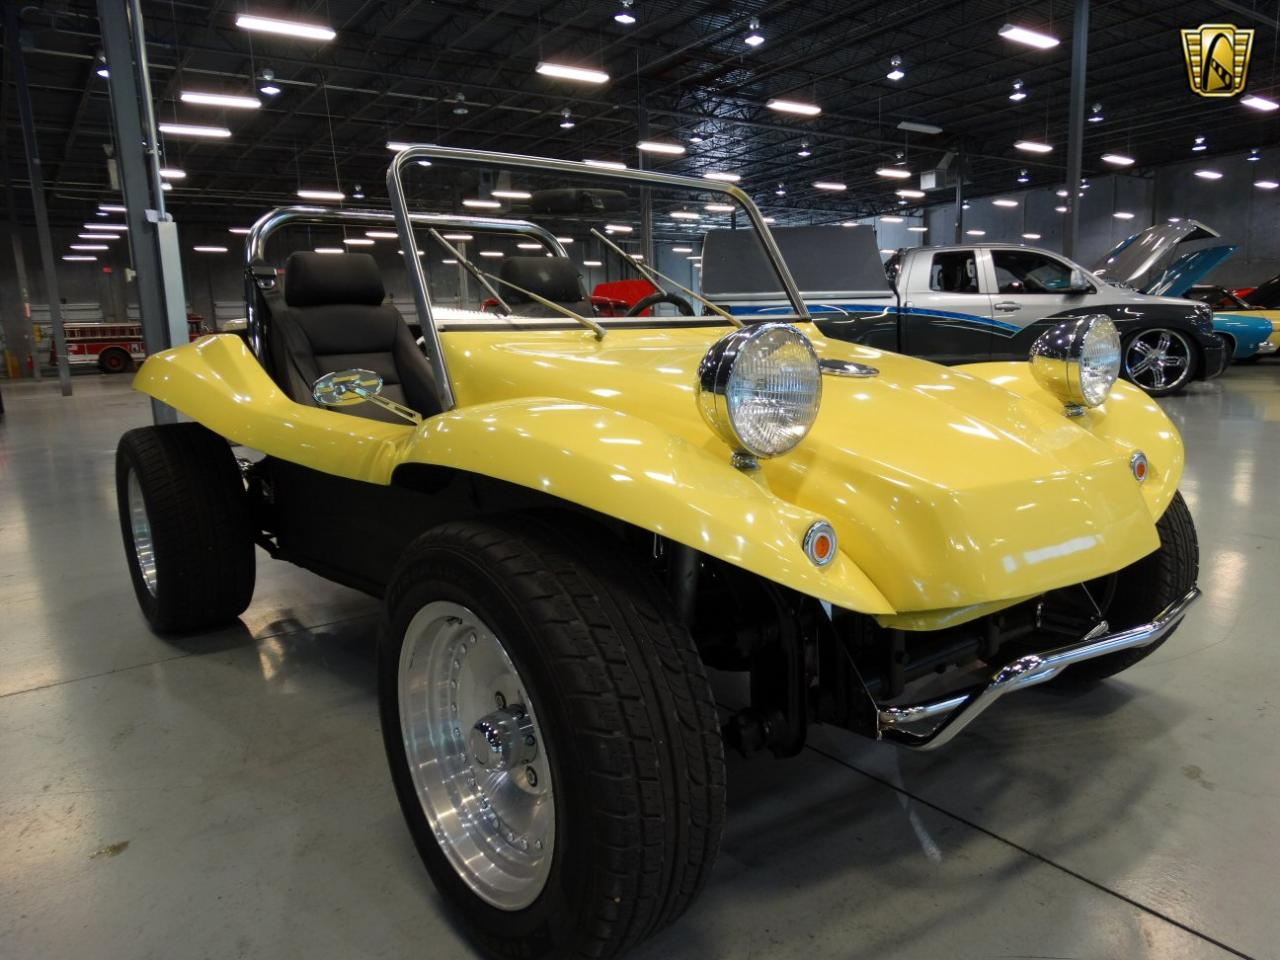 dune buggy for sale near me american go association. Black Bedroom Furniture Sets. Home Design Ideas